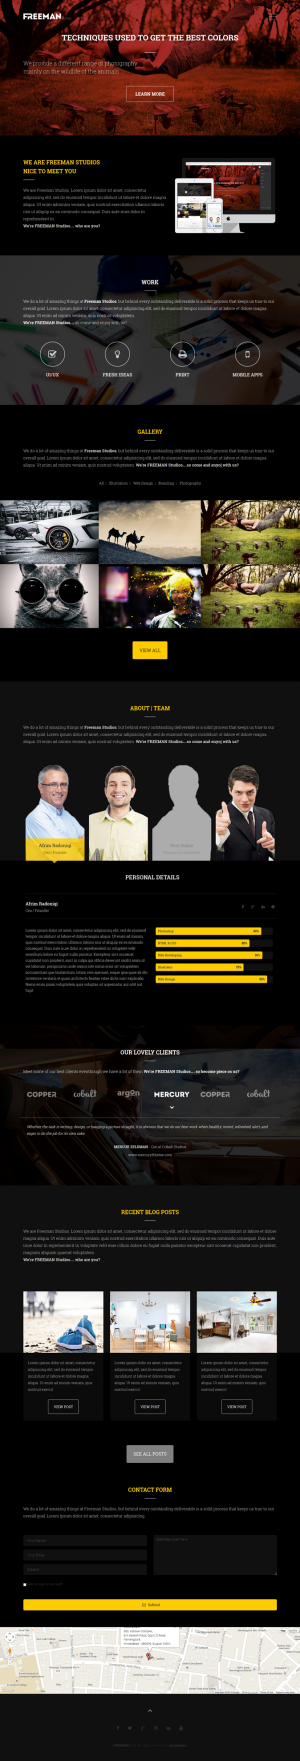 Freeman is a Multipurpose One Page Joomla Theme featuring clean and retina ready design suitable ...